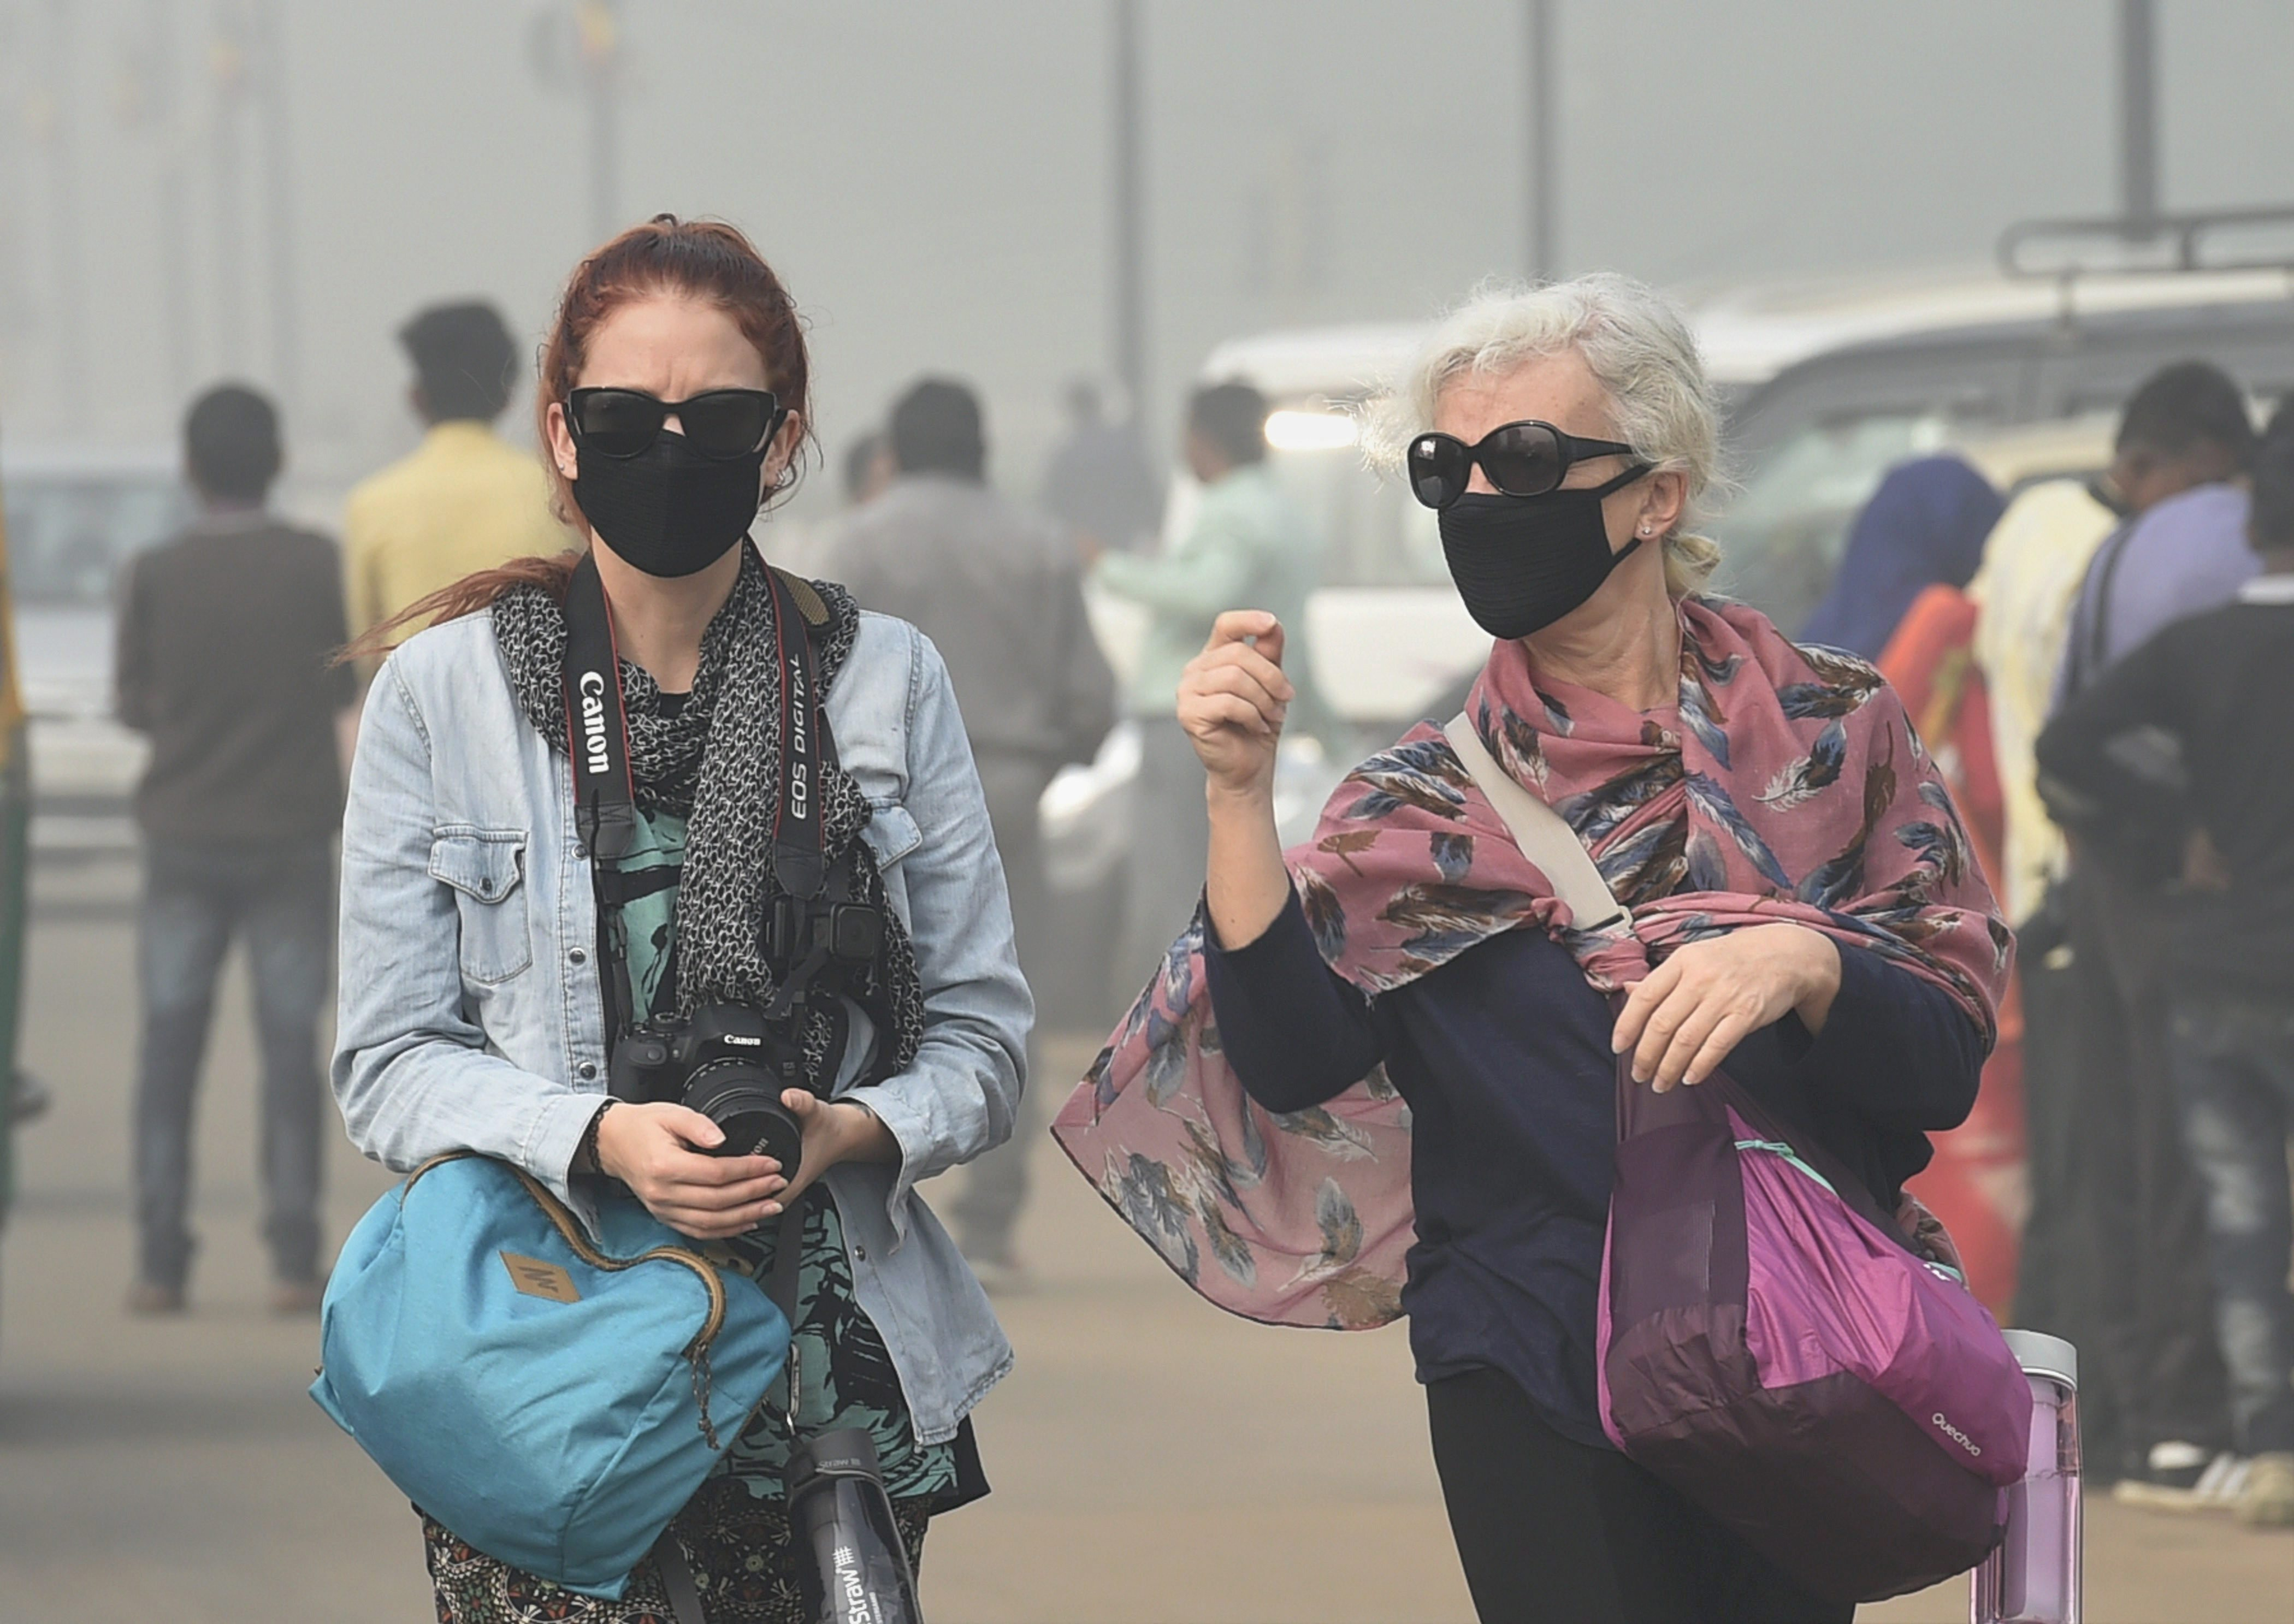 New Delhi: Foreign tourists wear masks to protect themselves from heavy smog and air pollution that reached high levels at Rajpath, in New Delhi on Friday. PTI Photo by Kamal Singh(PTI11 10 2017 000033A)